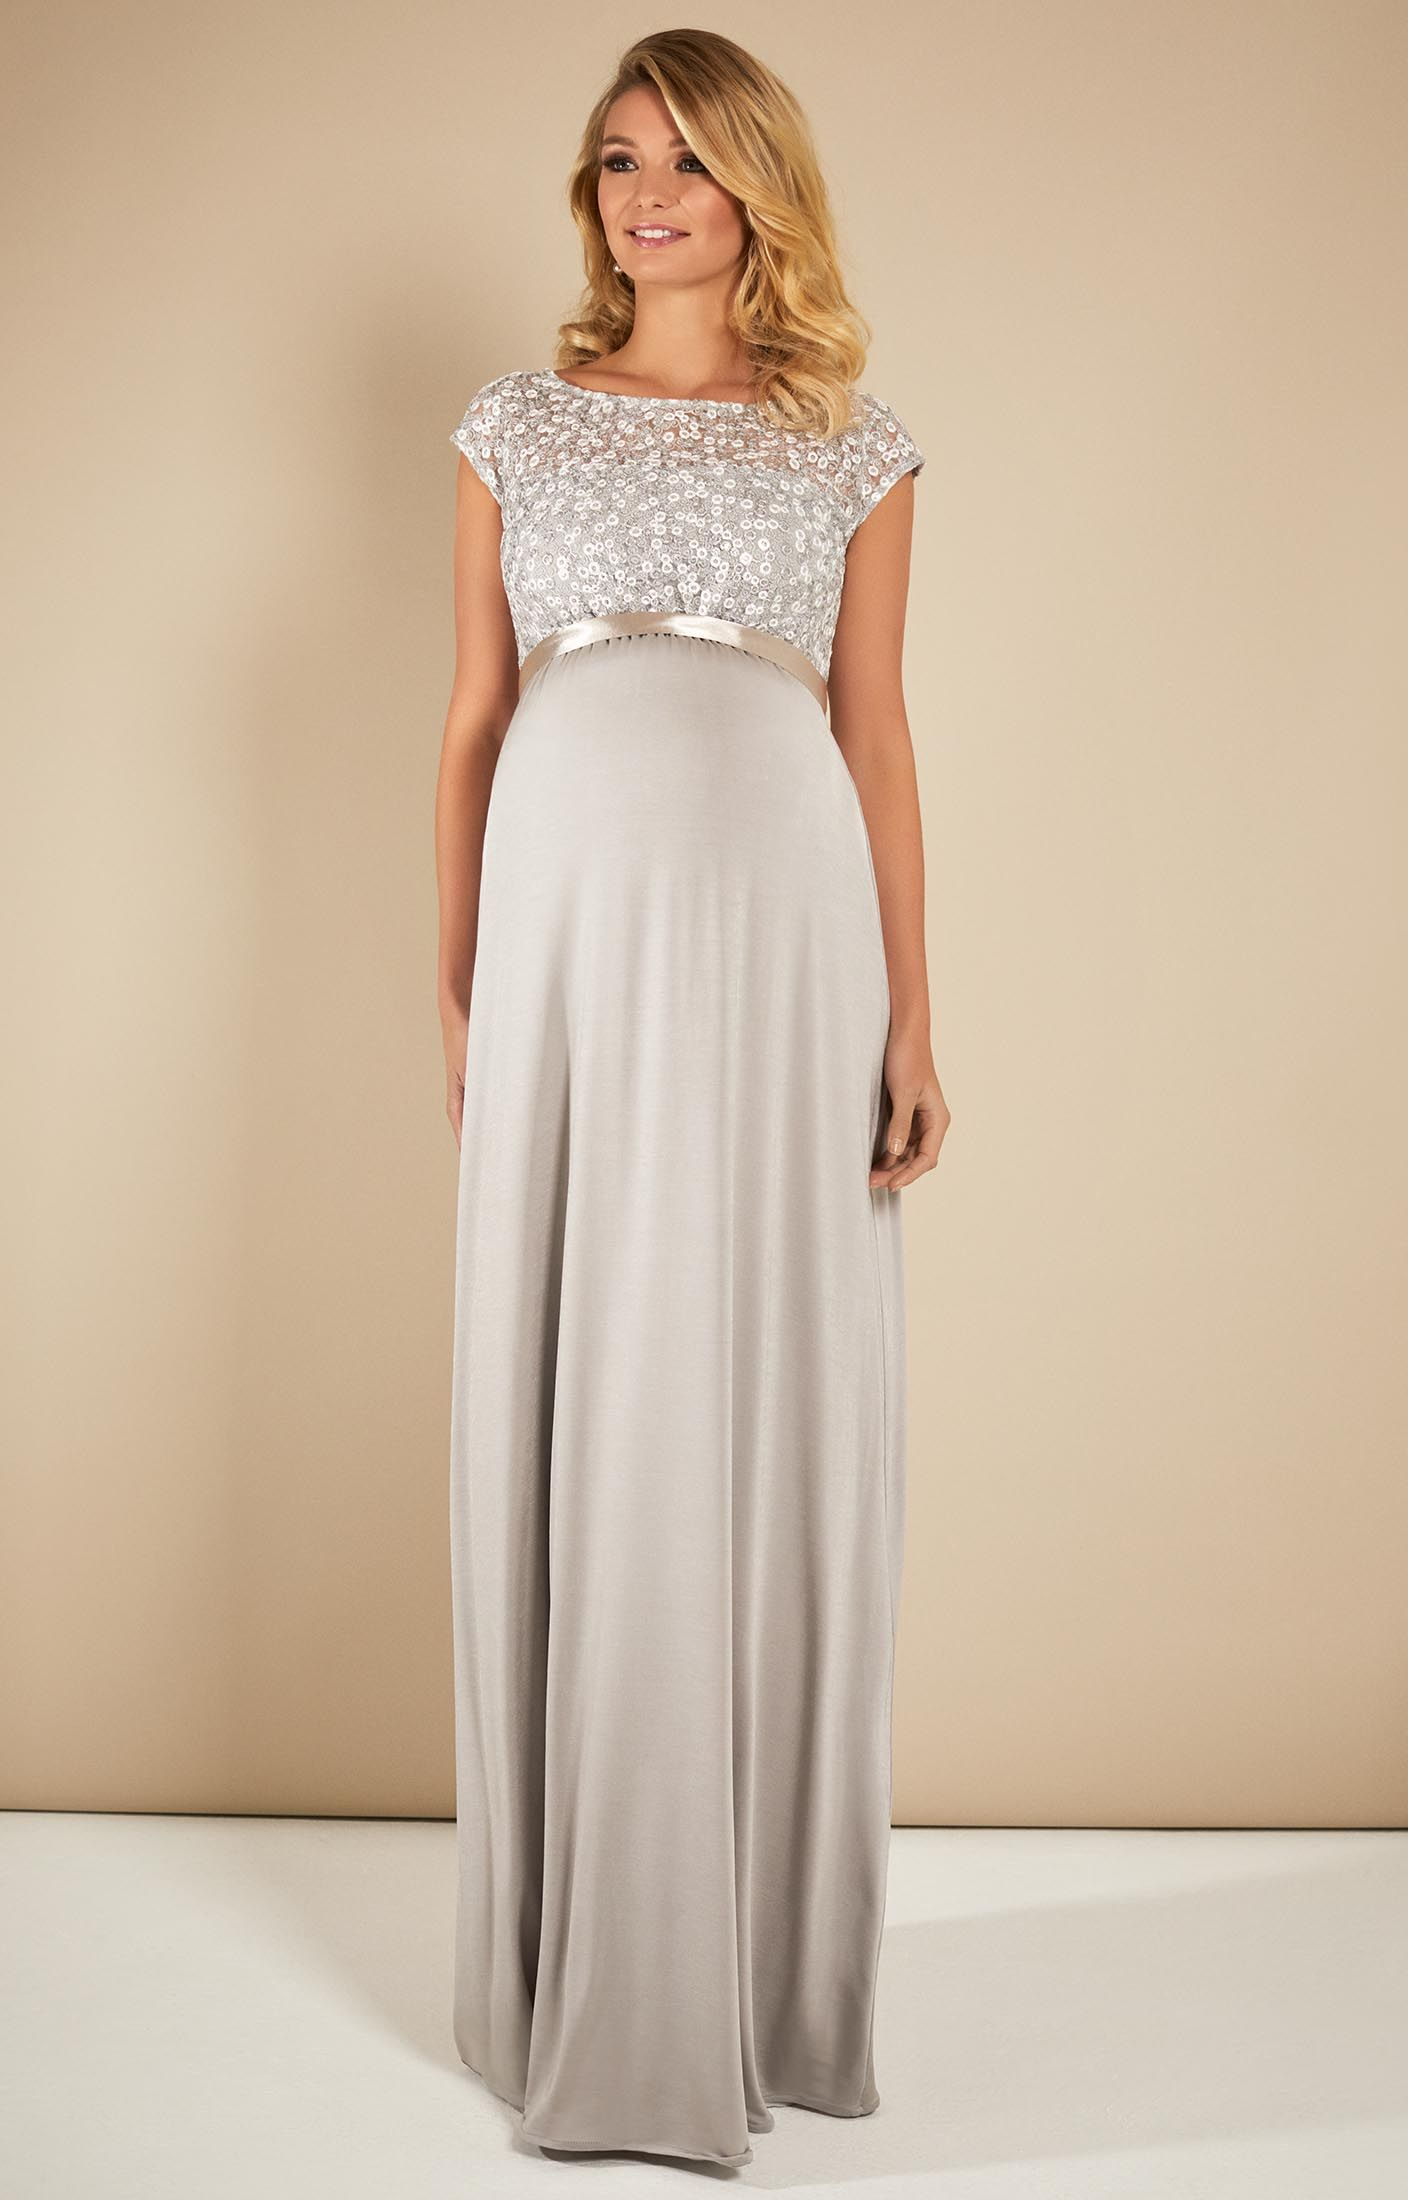 2291e01b082c8 A silver sequin encrusted bodice is beautifully designed with a soft jersey  floor length maternity gown for after dark glamour. The lace, embroidery  and ...